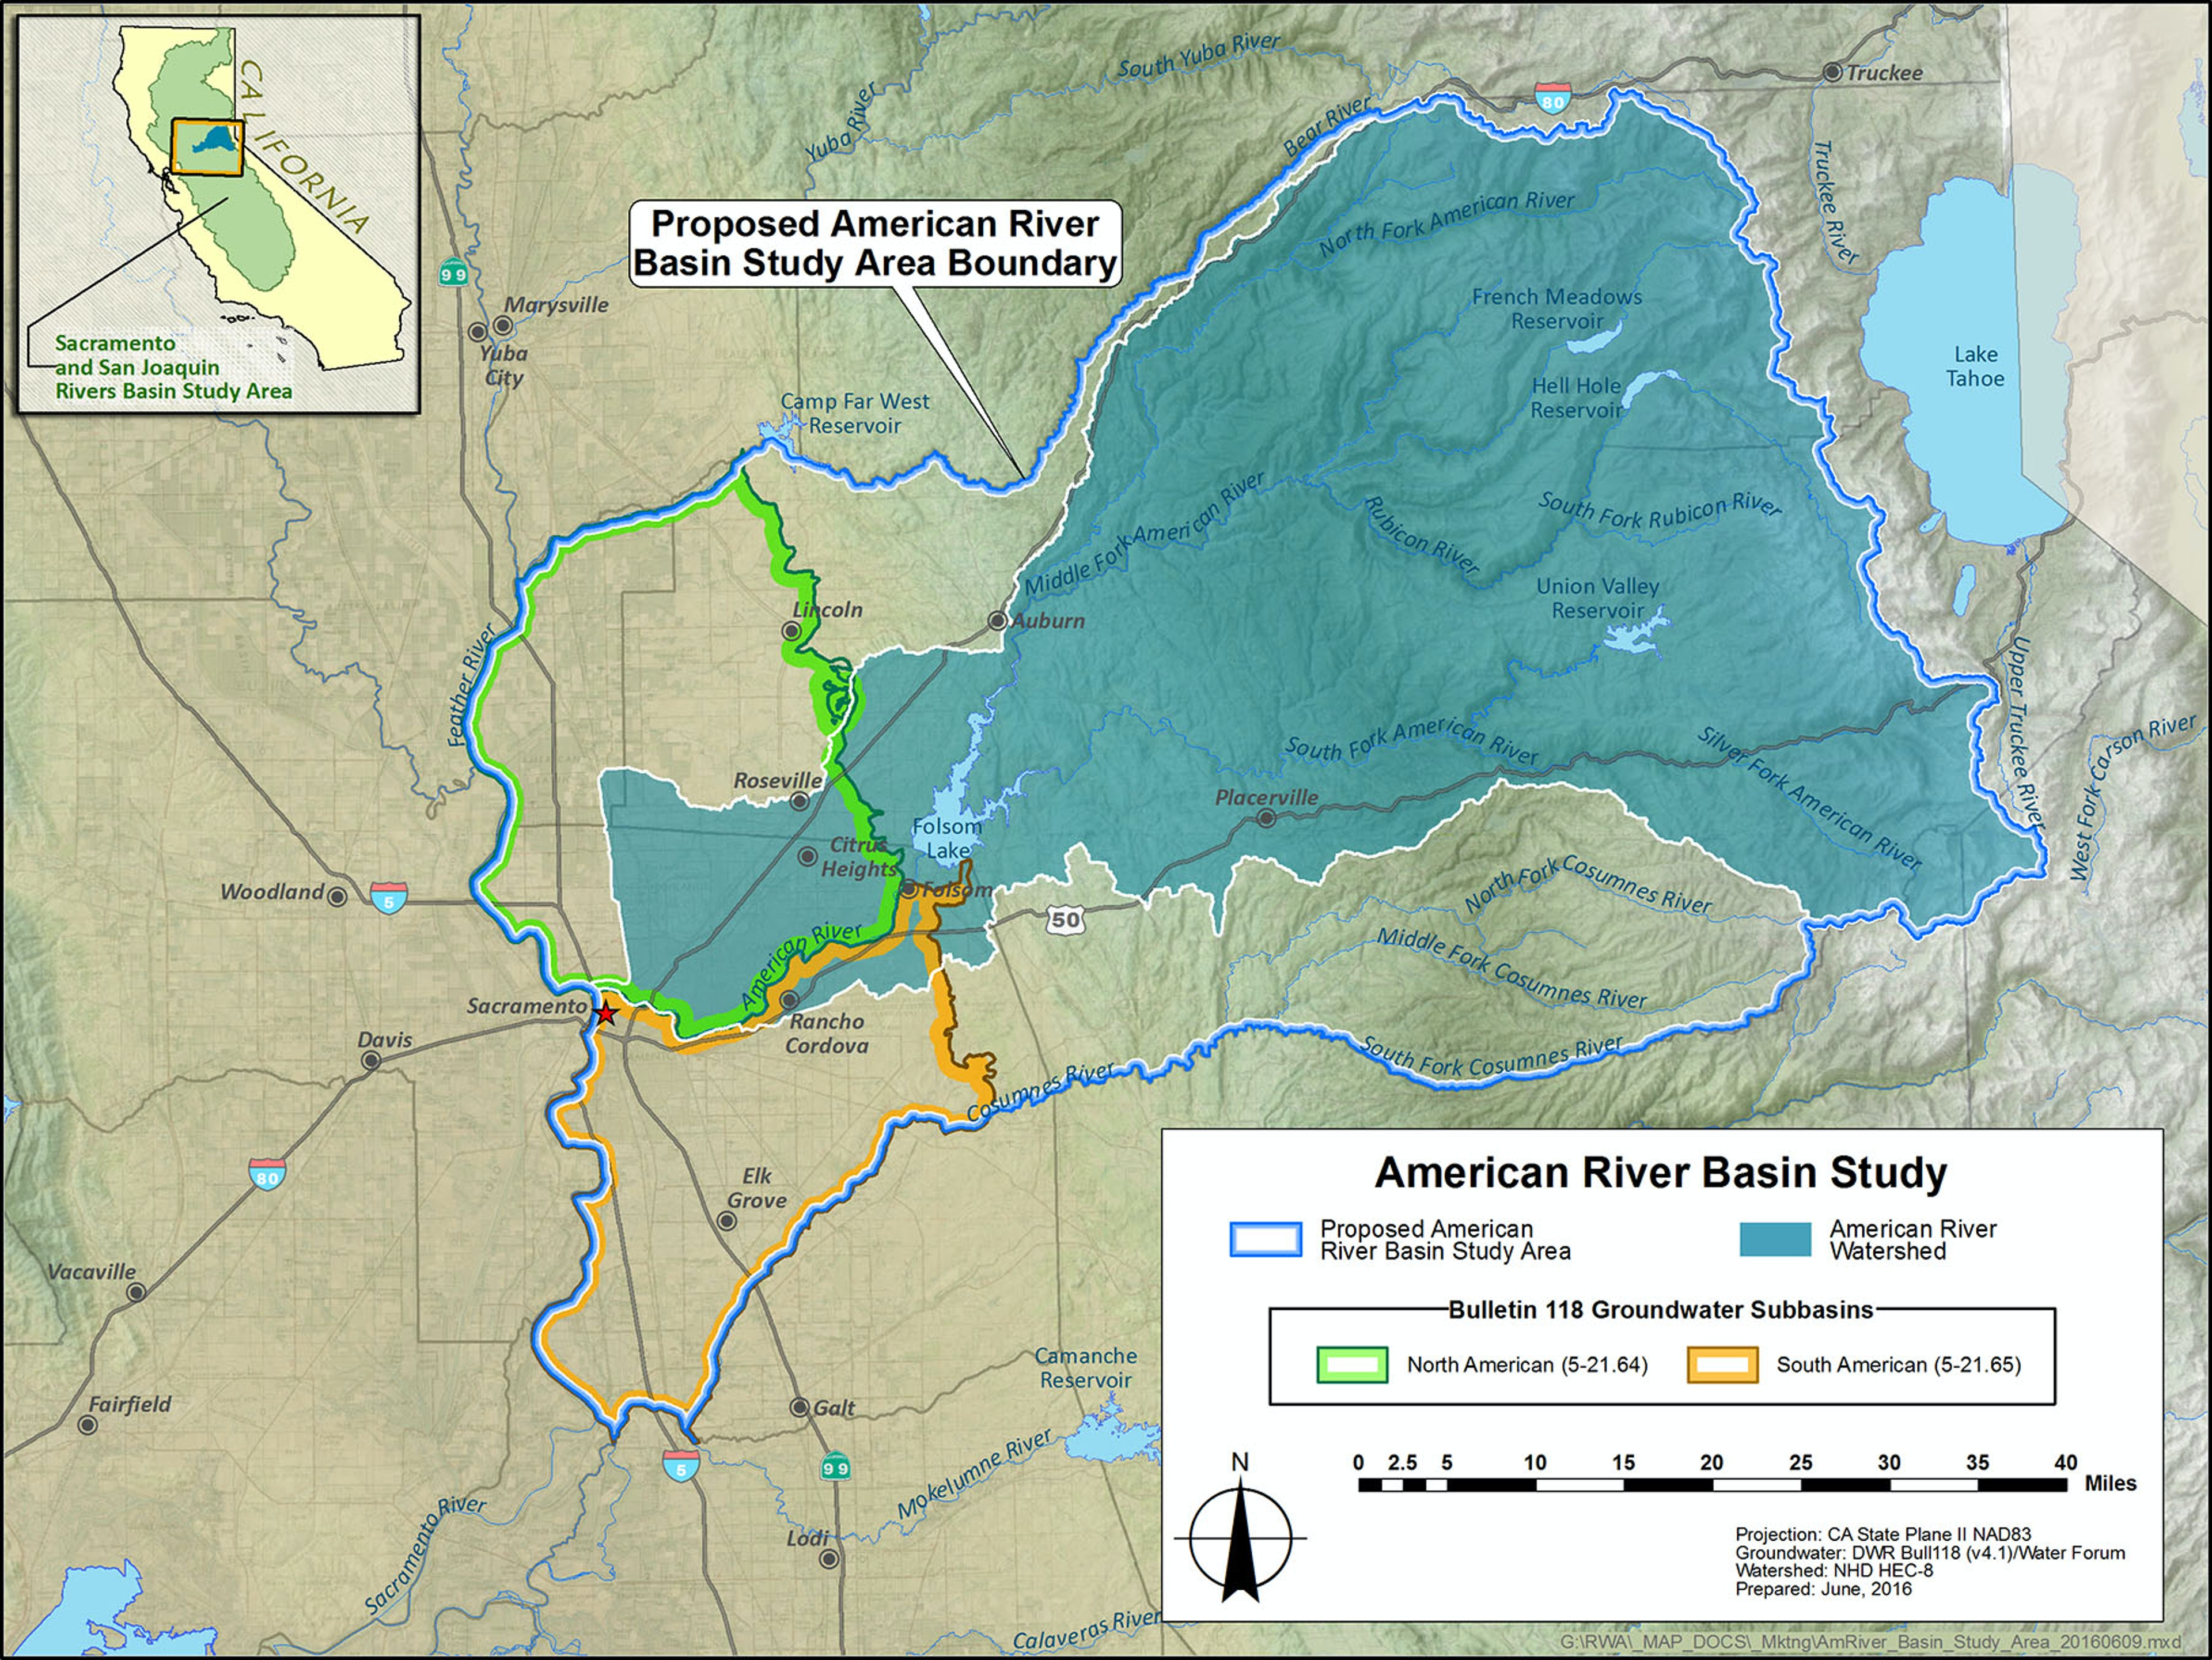 Map of American River Basin Study Area